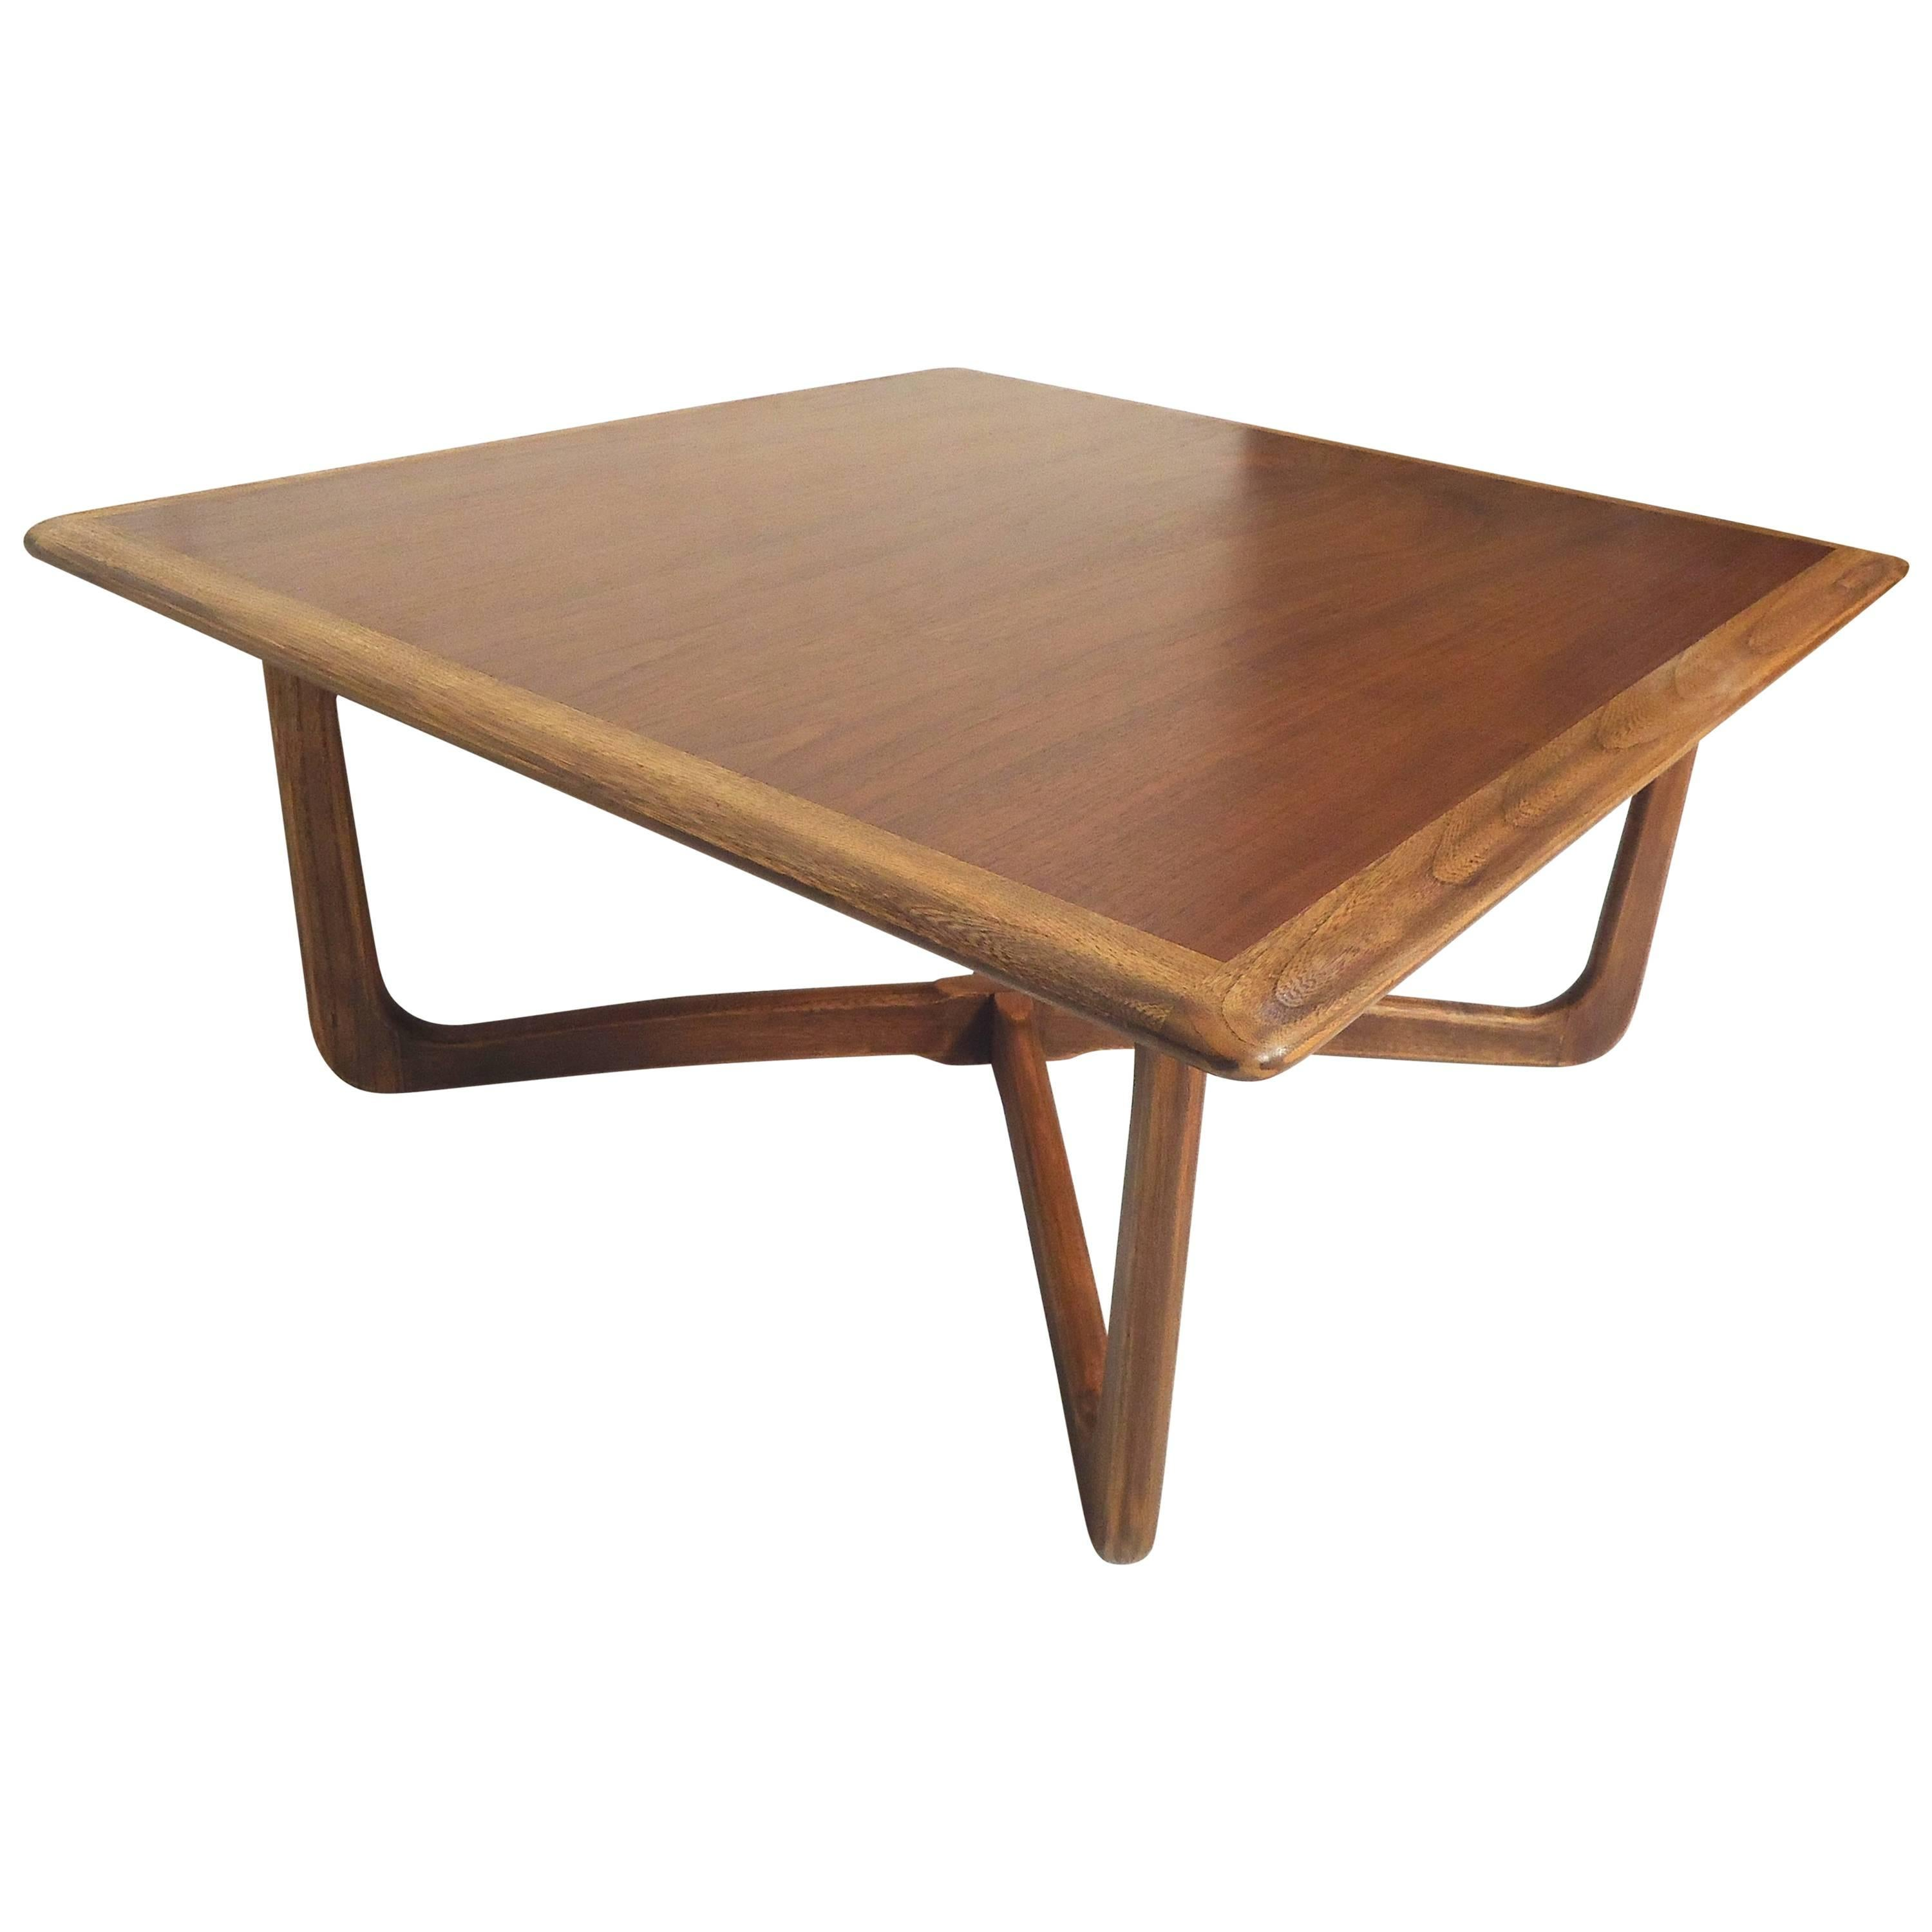 Lane Furniture Coffee and Cocktail Tables 32 For Sale at 1stdibs